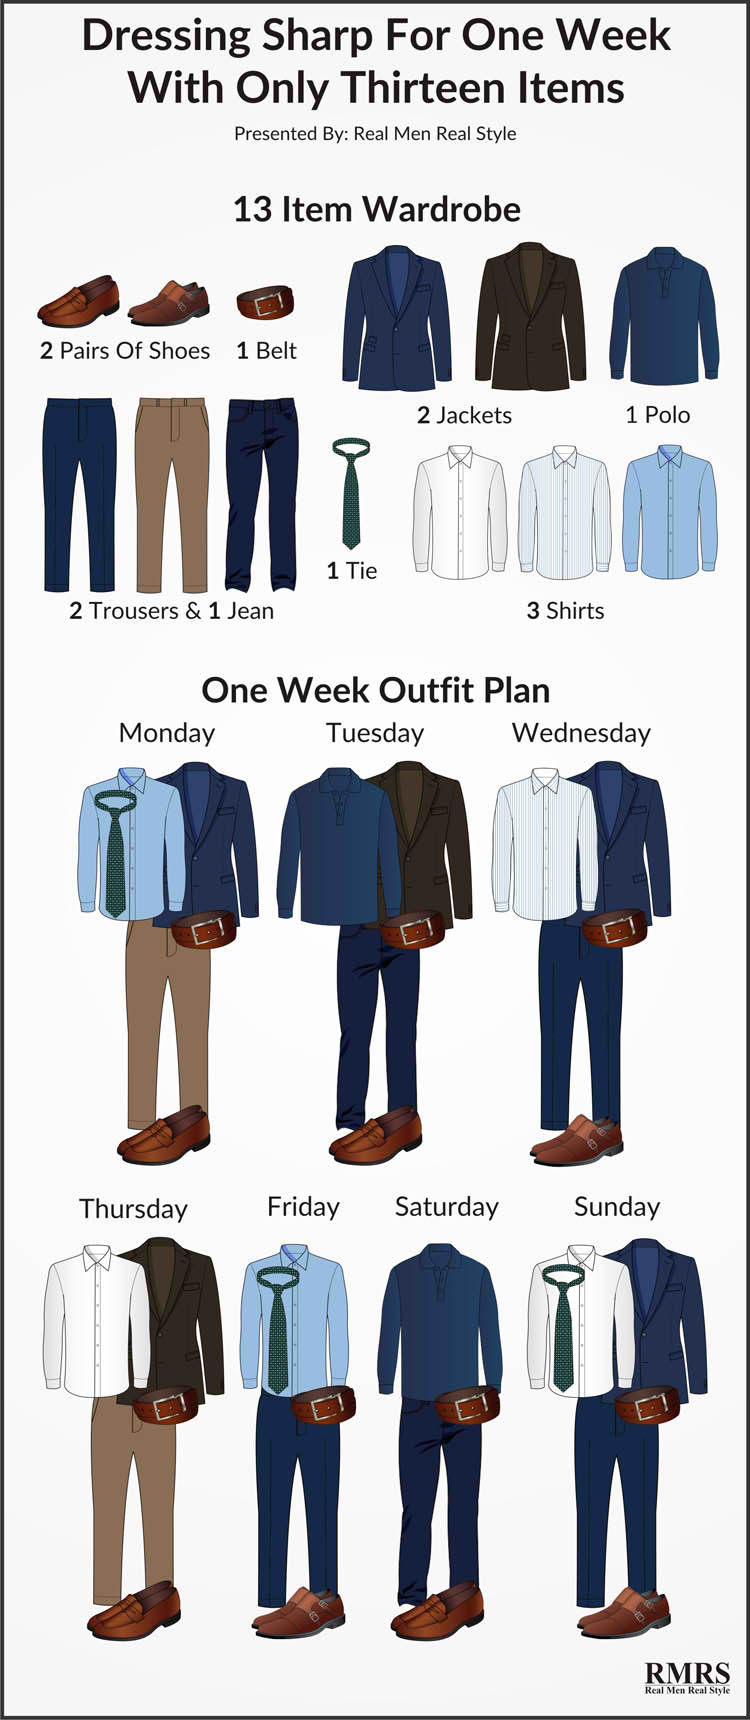 dressing-sharp-for-one-week-with-only-13-items-750